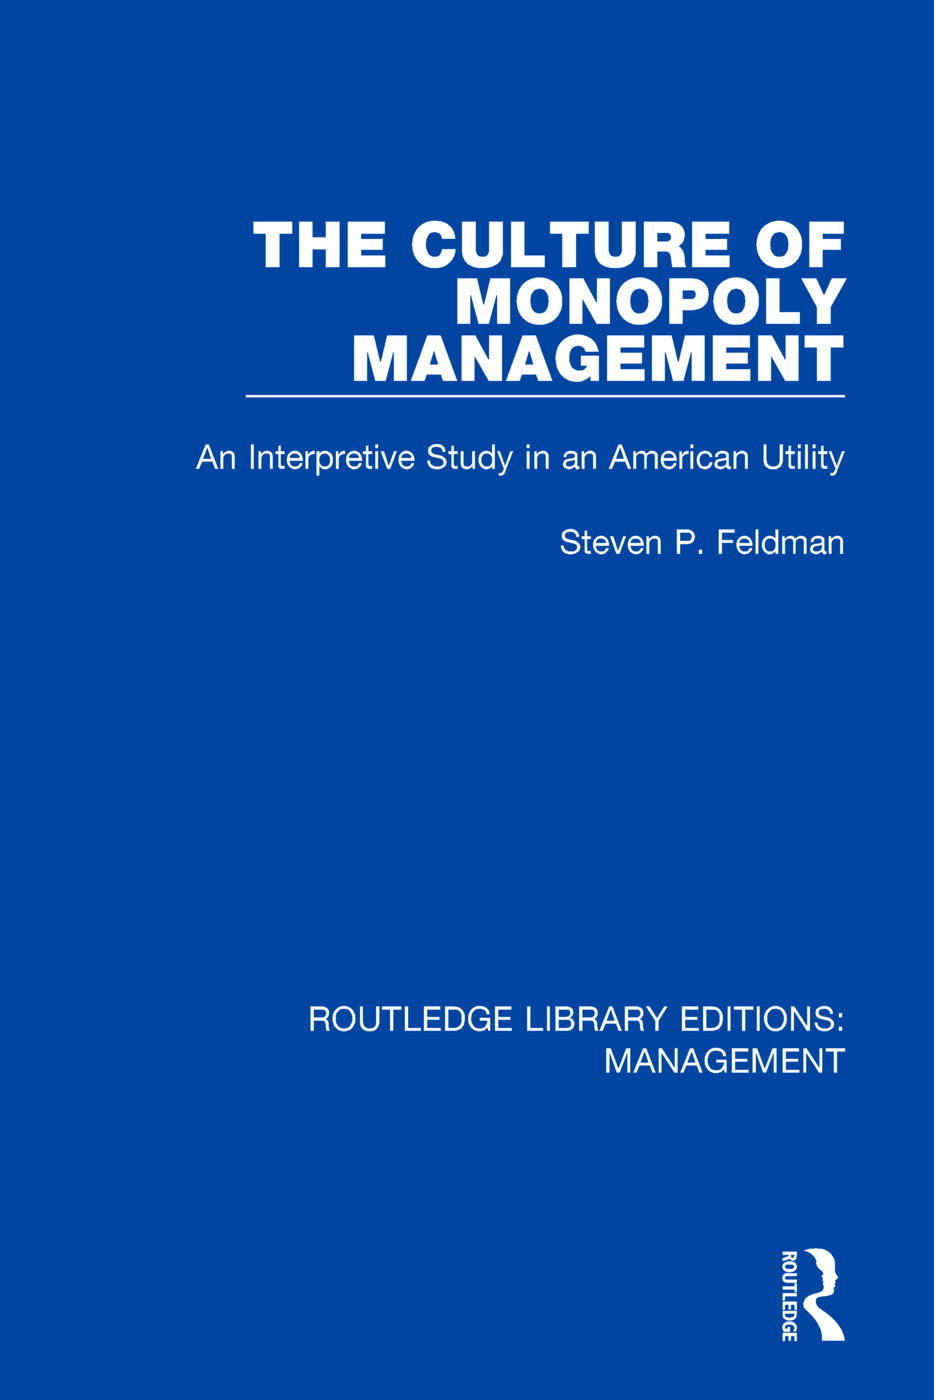 The Culture of Monopoly Management